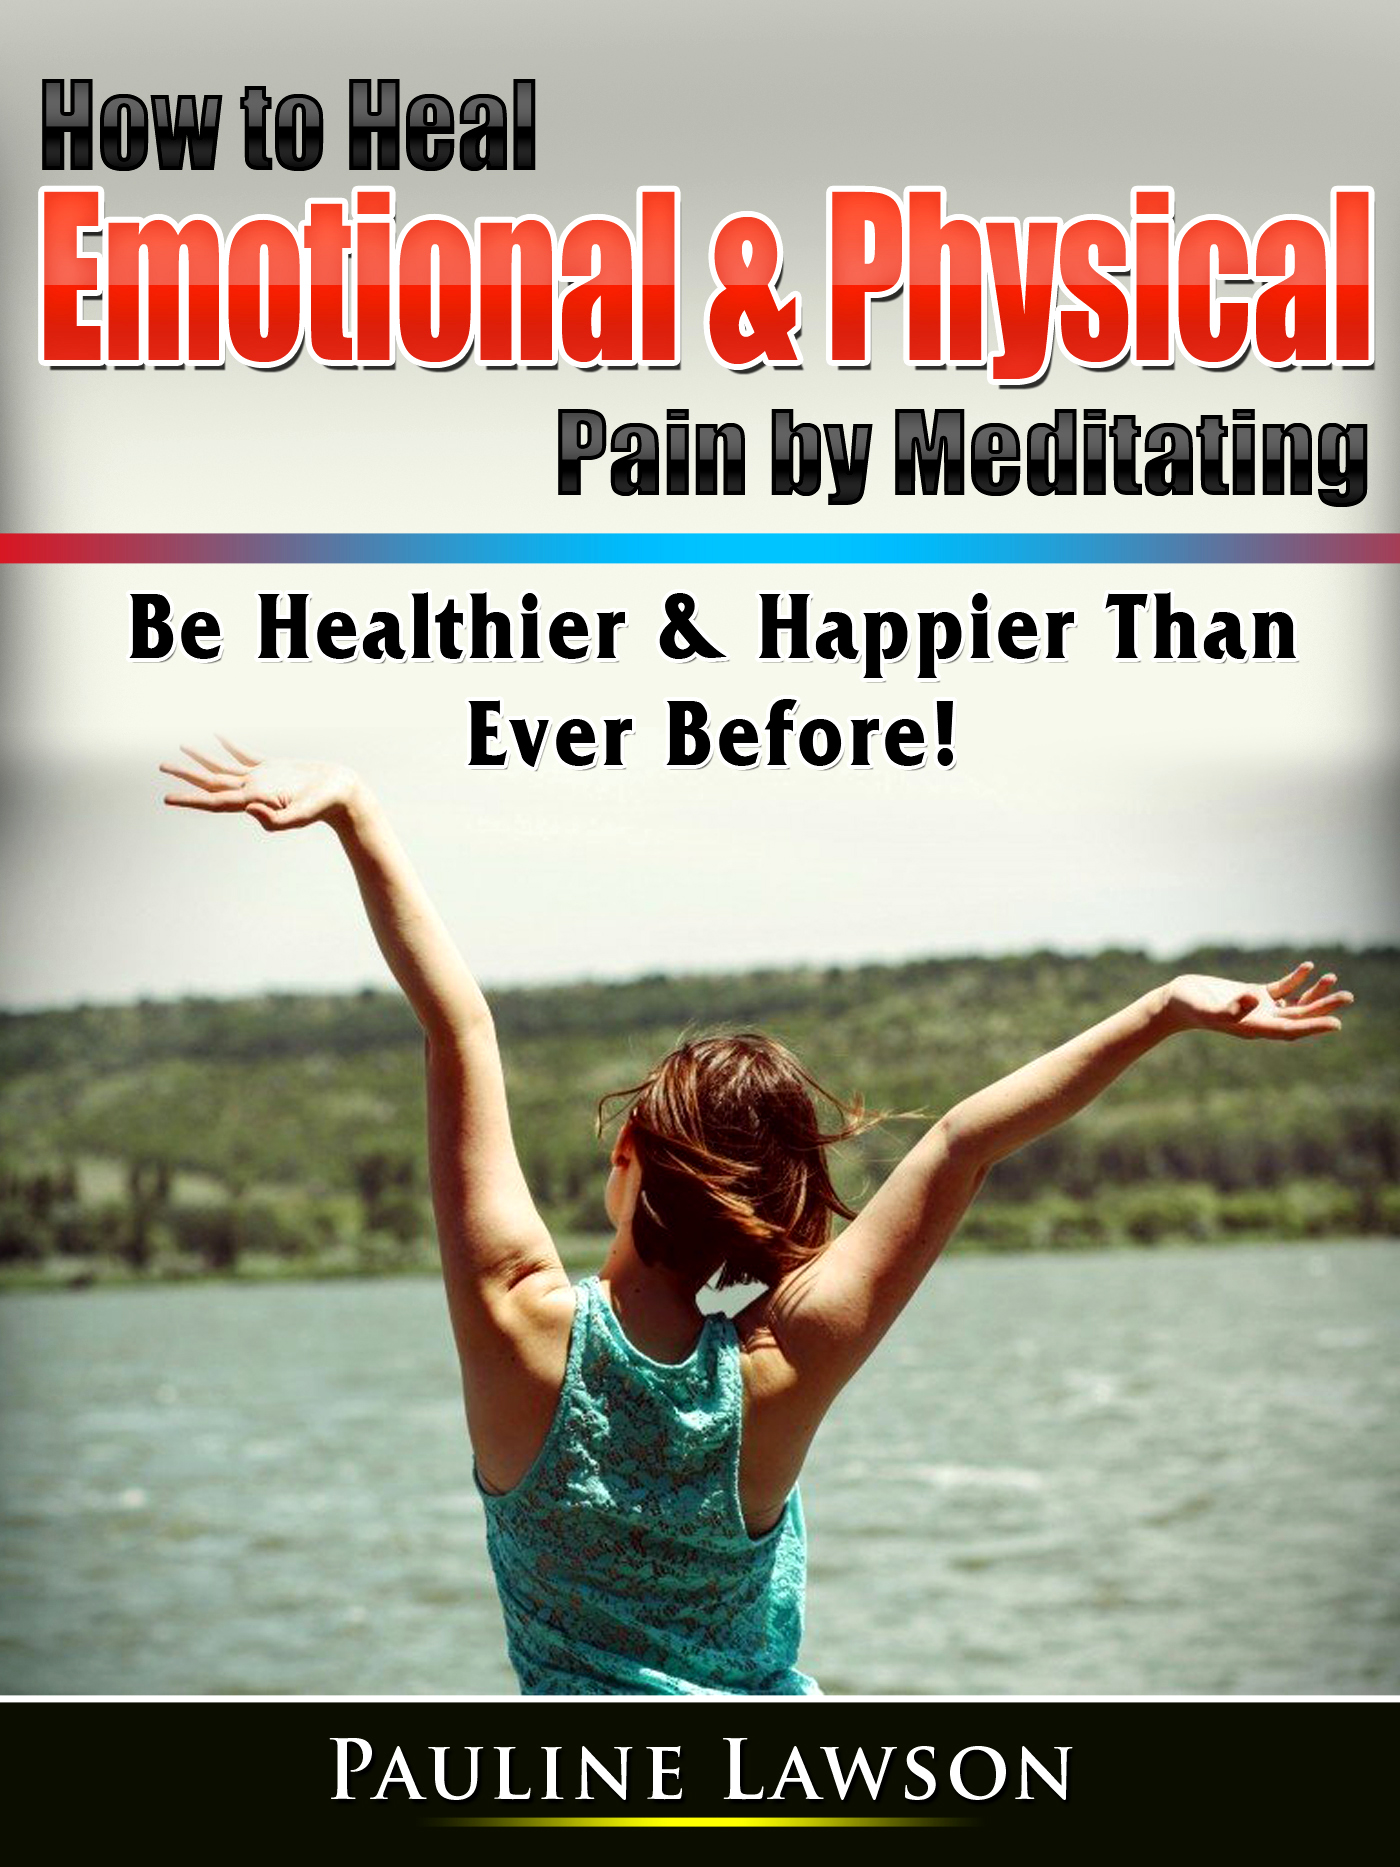 How to heal emotional & physical pain by meditating: be healthier & happier than ever before!